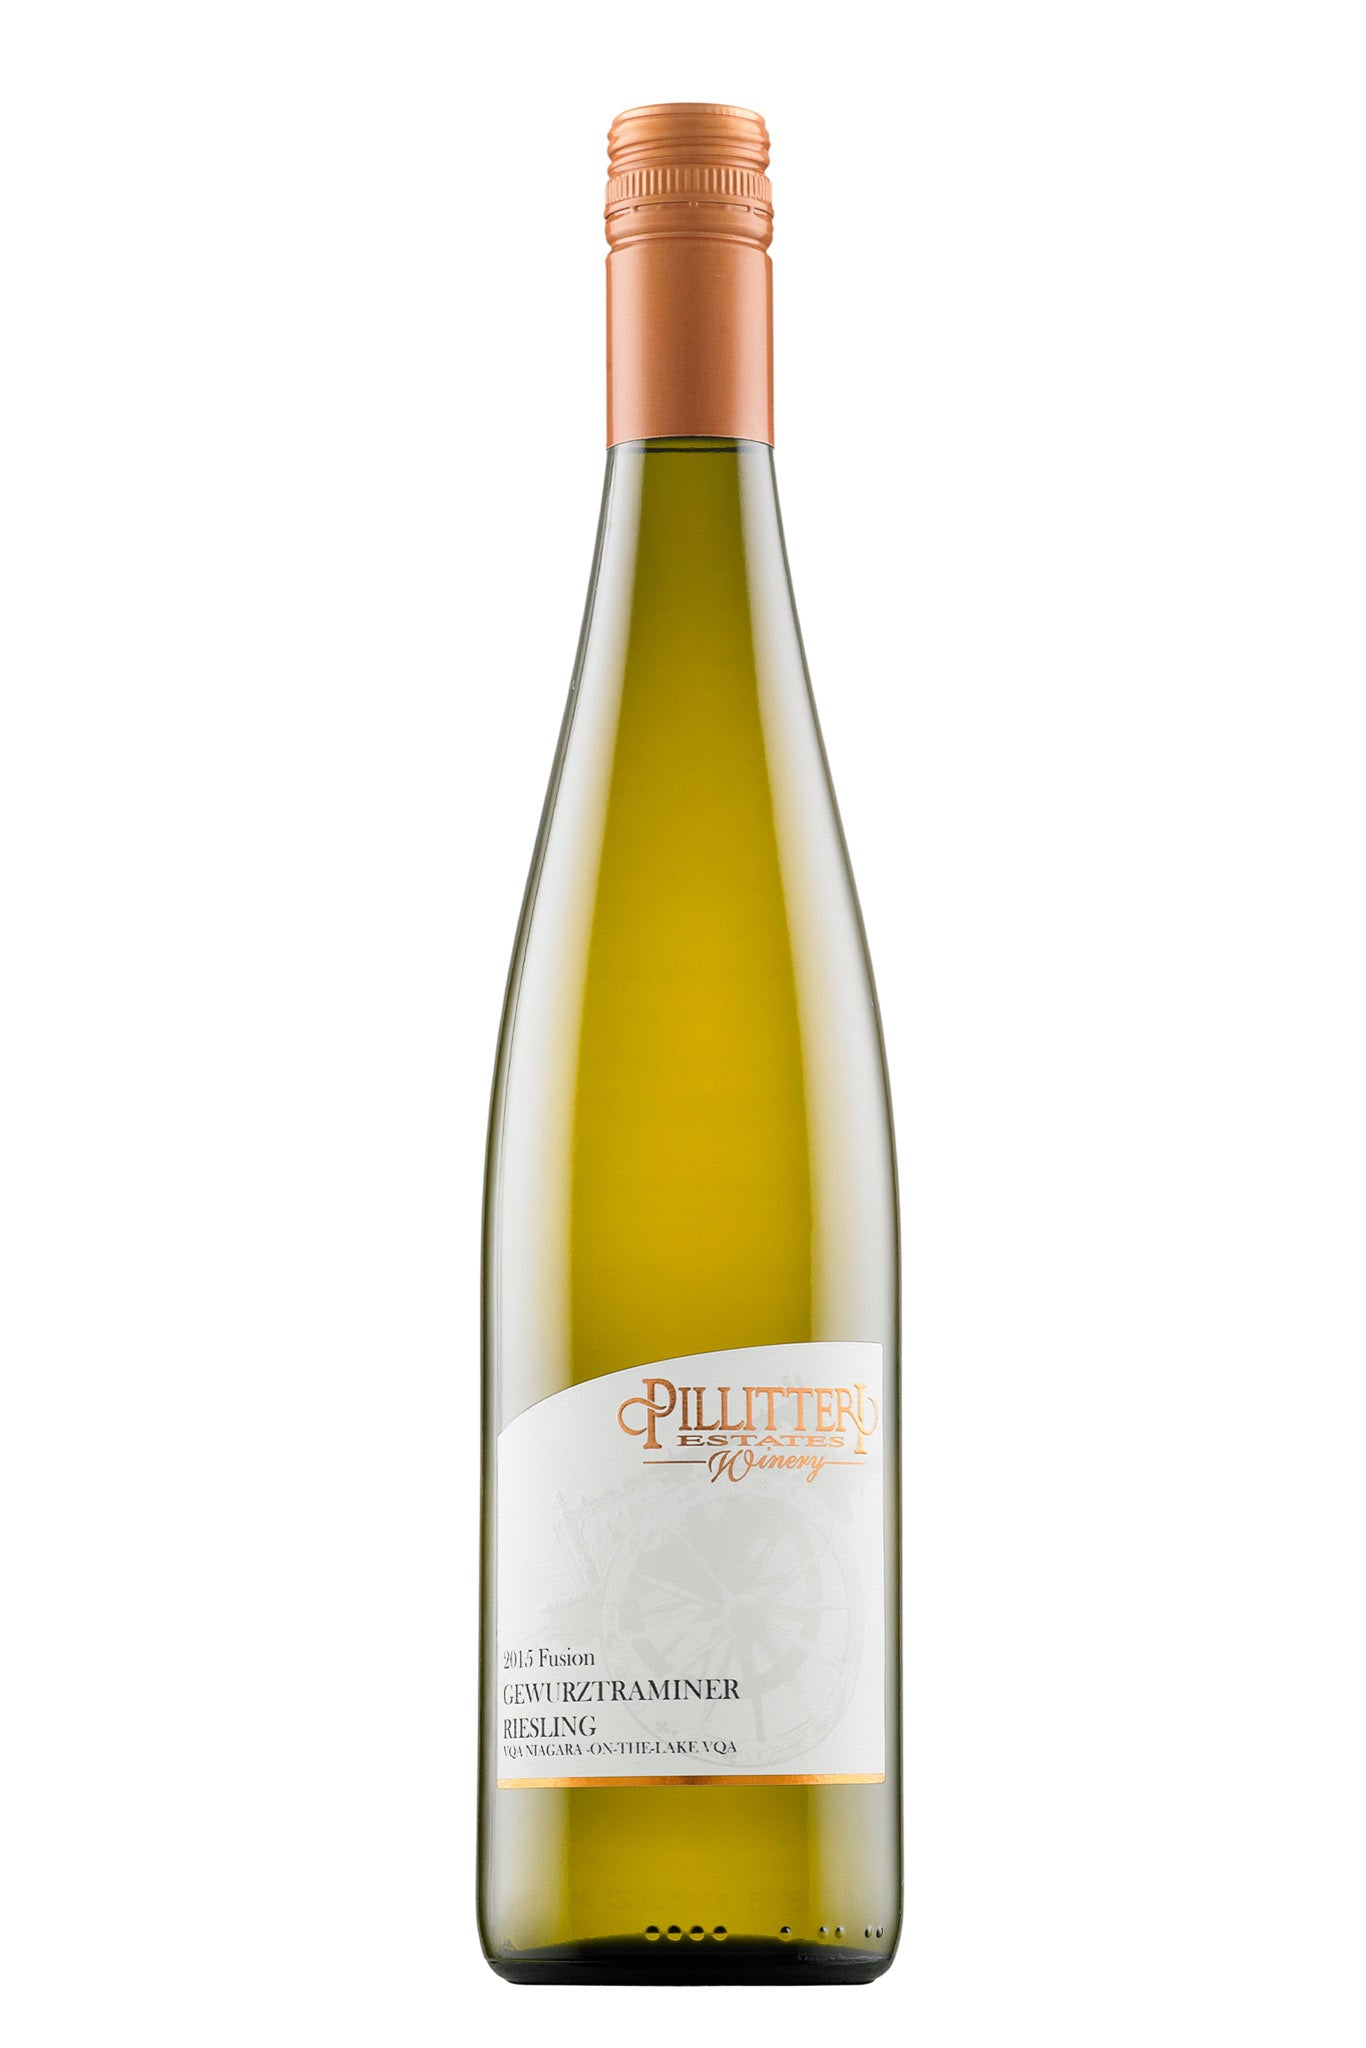 Pillitteri Estates Winery Gewürztraminer / Riesling